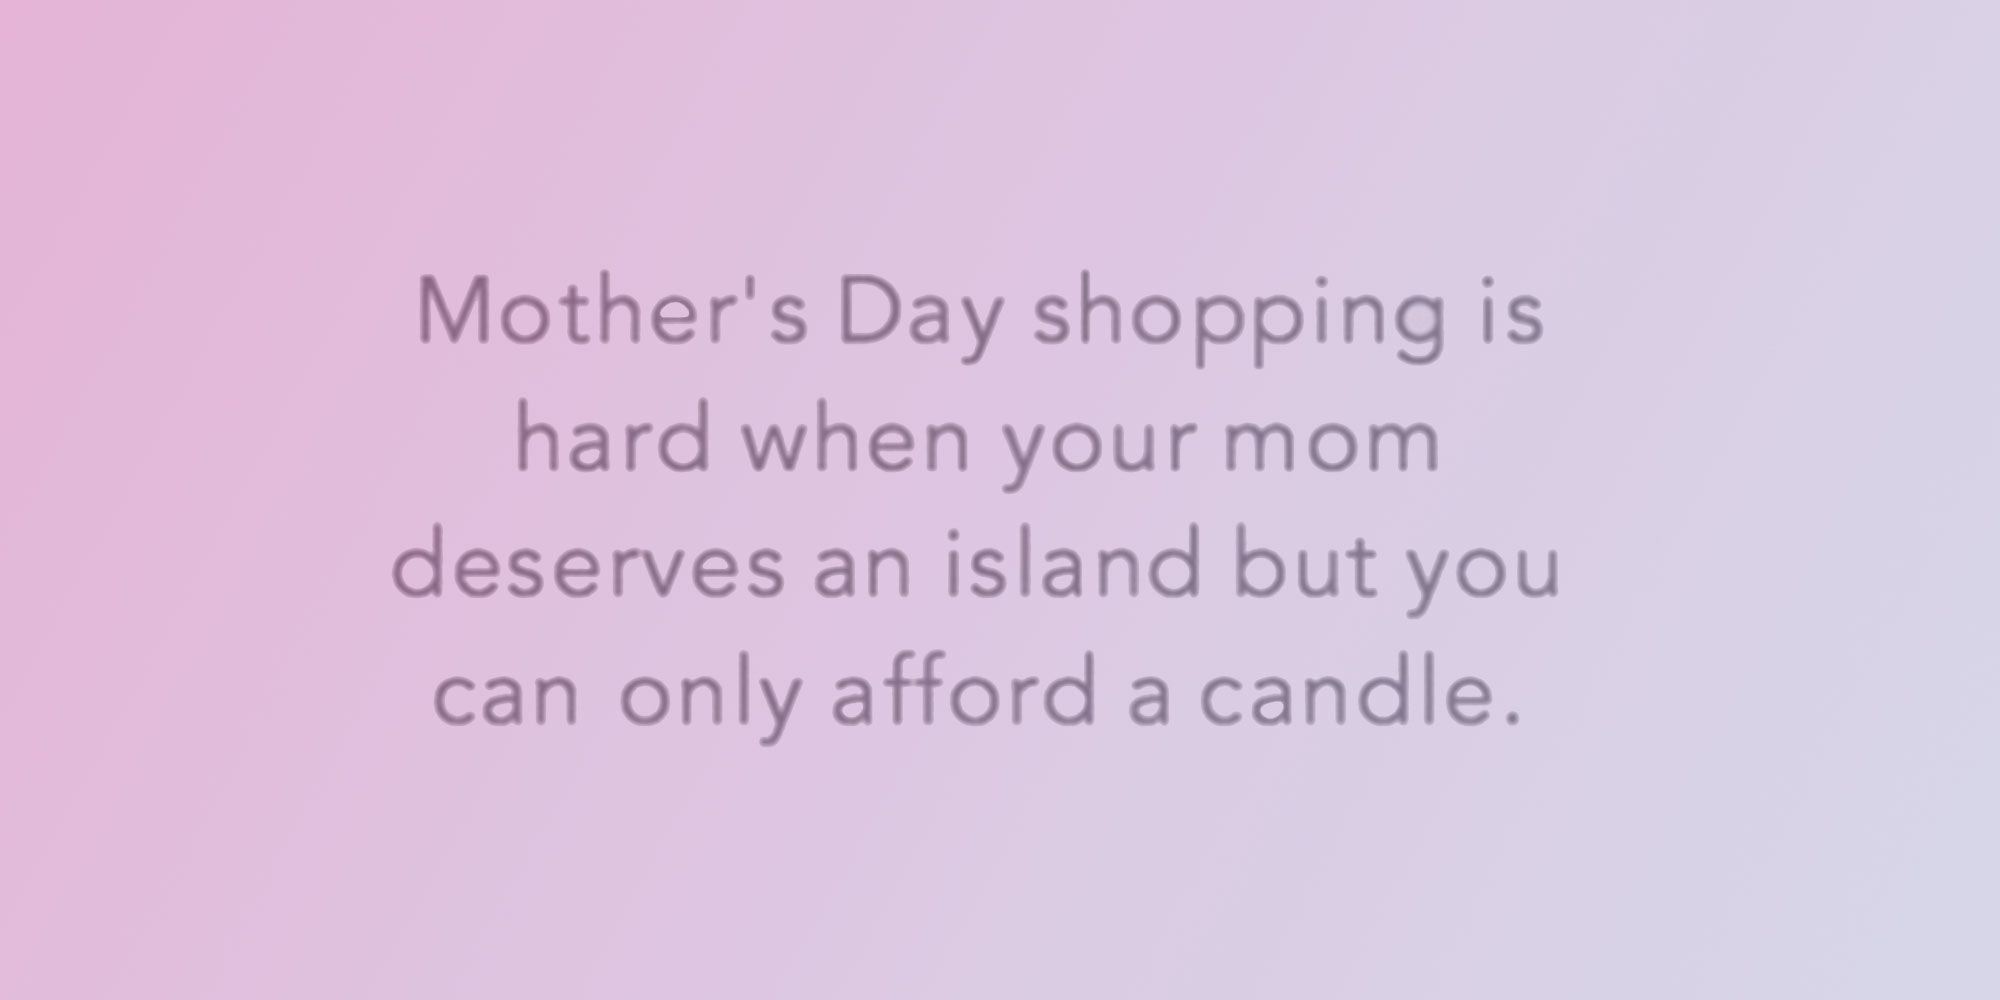 Quotes For Mothers | Mothers Day Quotes And Mother Daughter Quotes To Send To Mum